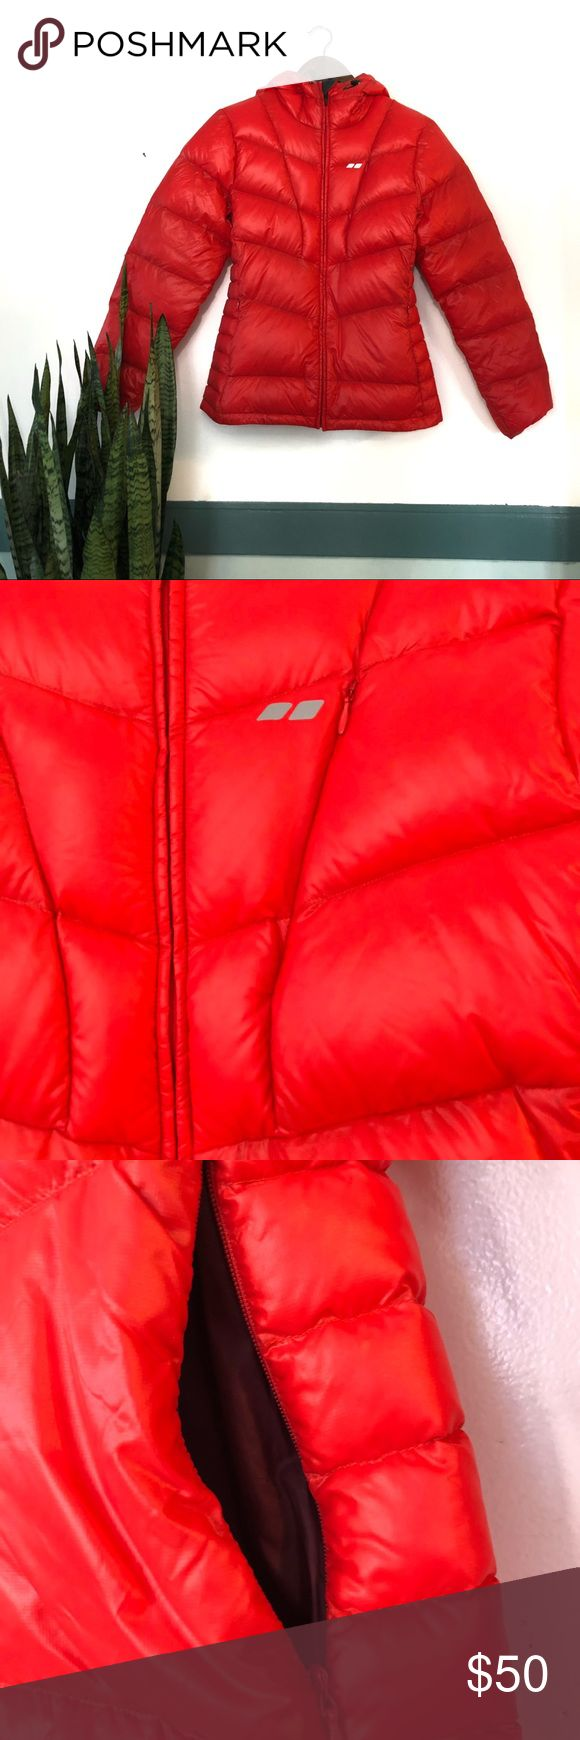 WOMEN'S KÄLKE DOWN JACKET RED The KÖPPEN Women's Kälke Down Jacket is insulated and performance driven. The 650 fill duck down provides superior warmth while quilted channels stabilize the fill to keep the heat consistent. Features like the full storm flap, stretch binding around wrists and adjustable elastic cuffs provide increased mobility and enhance your performance.   FEATURES Full hood Adjustable bungee cord and cord lock Insulation: 650-fill duck down  Fabric: 100% POLY MINI RIPSTOP…